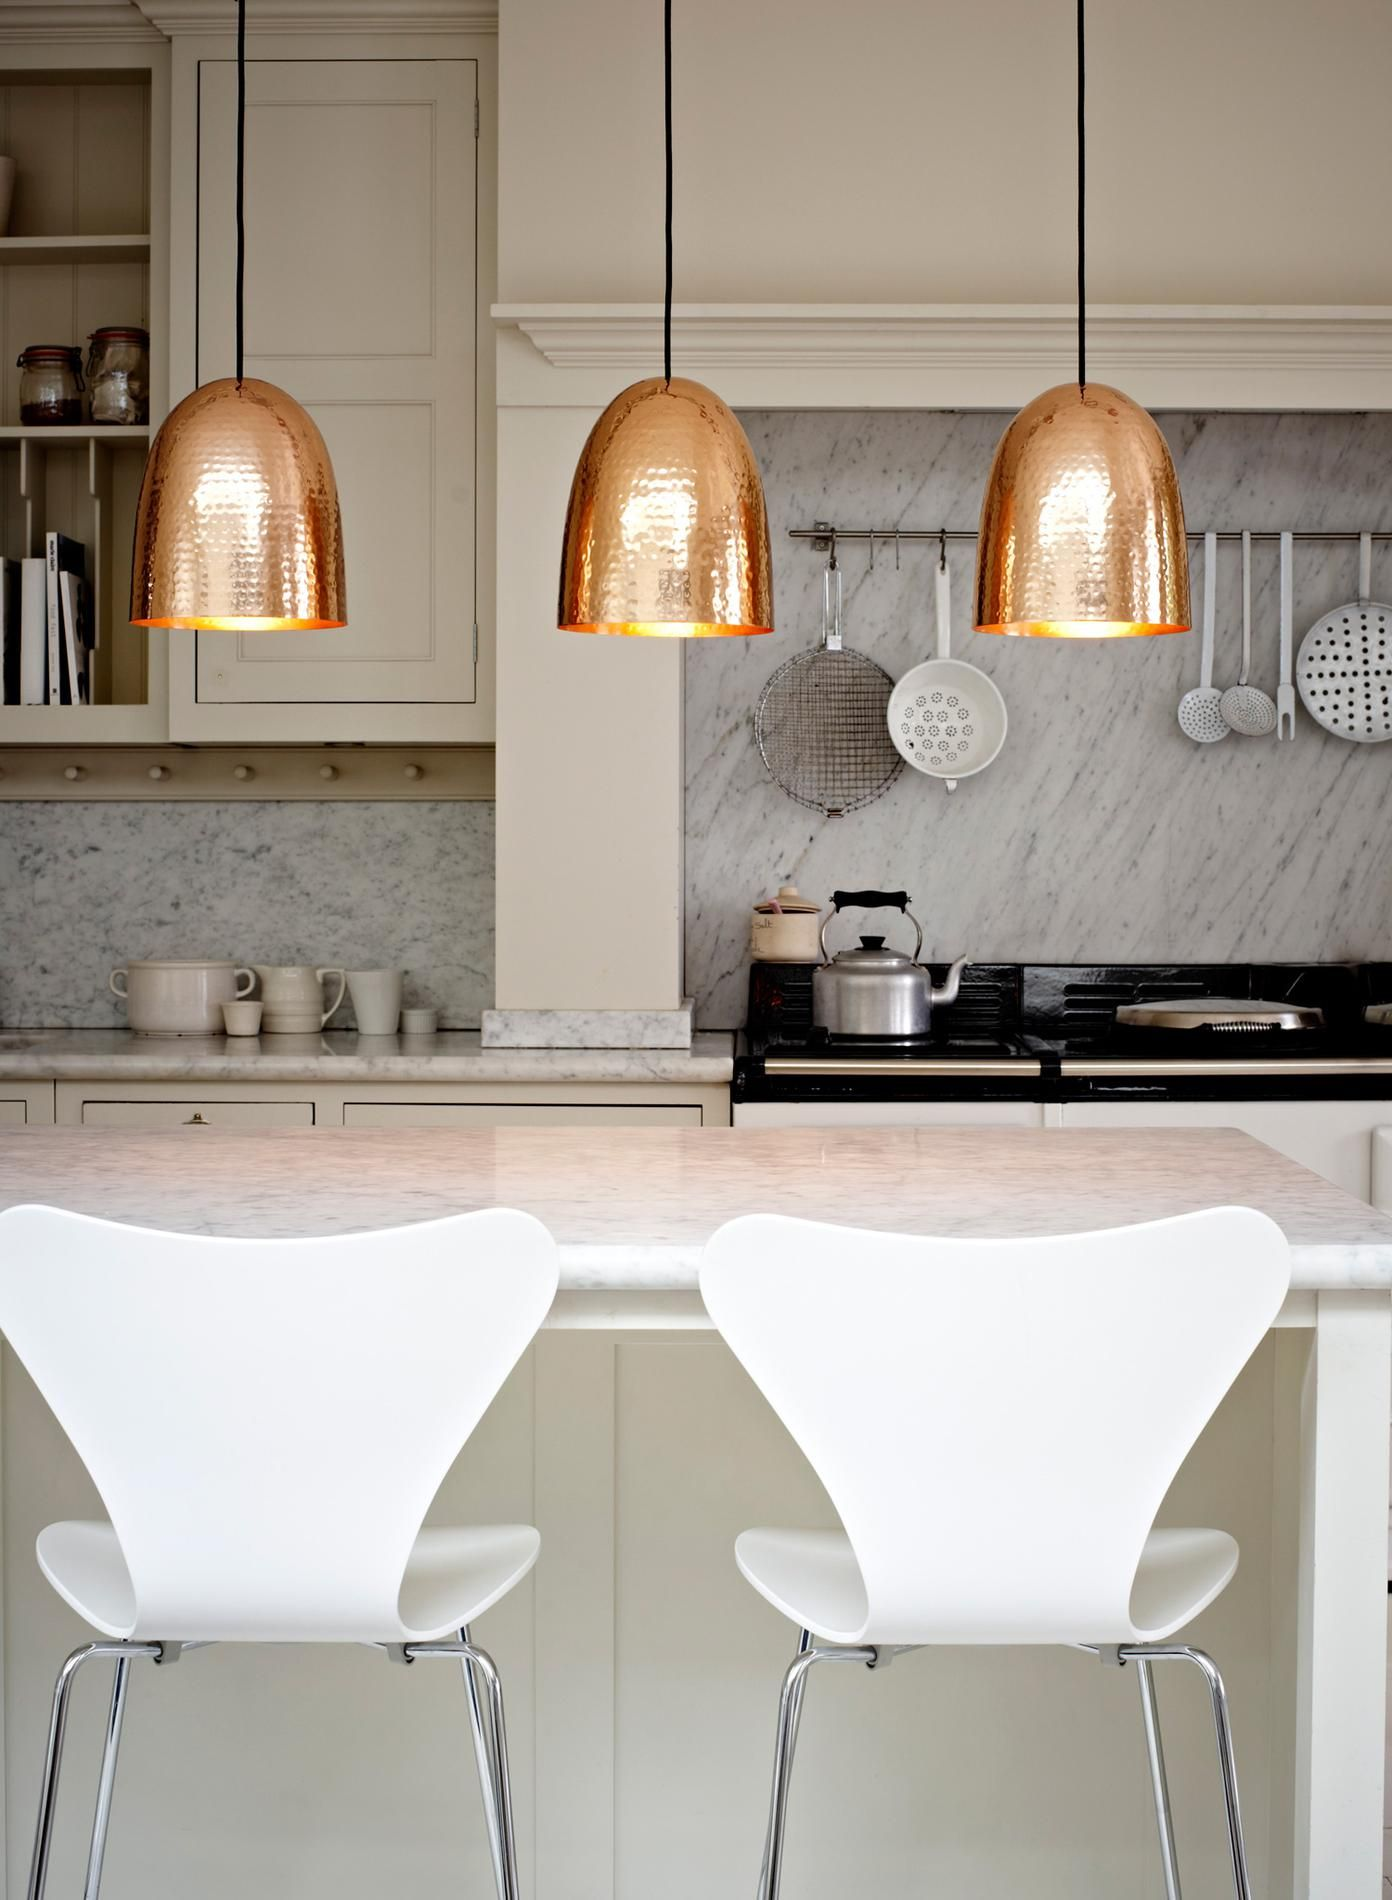 Examples Of Copper Pendant Lighting For Your Home - Pendant lighting for small kitchen